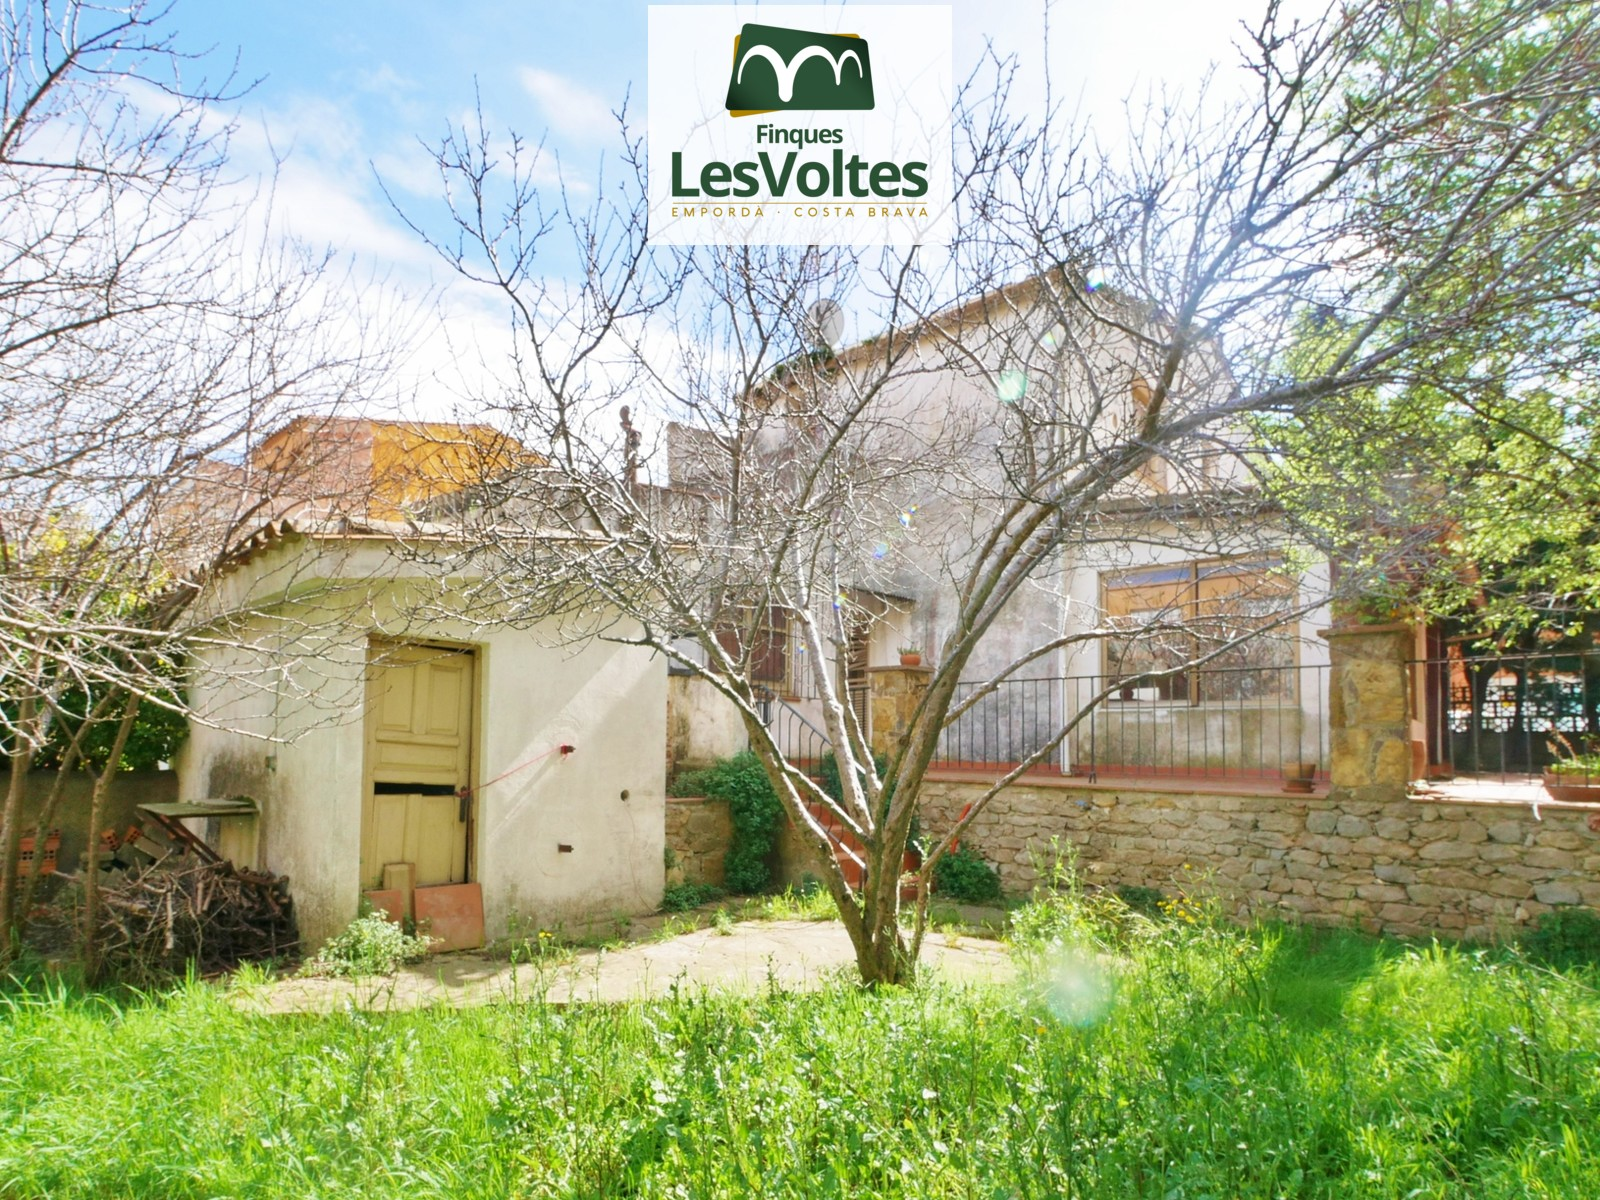 OPPORTUNITY! CHARMING HOUSE 180M2 AND GARDEN 280M2 FOR SALE IN THE CENTER OF PALAFRUGELL.